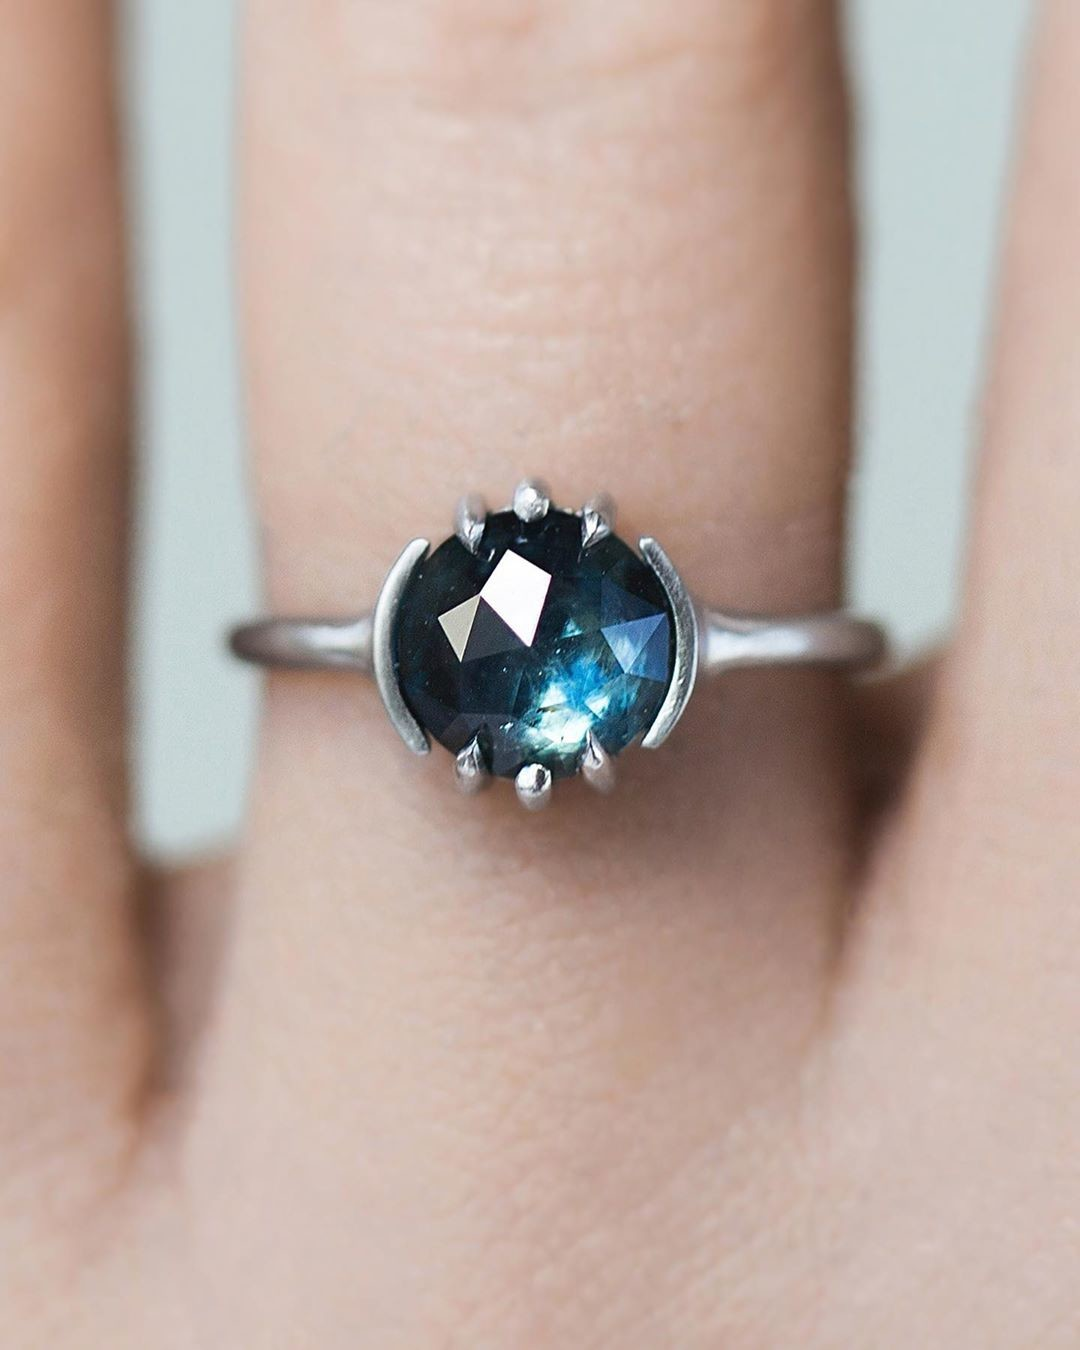 A cool ring to beat the heat